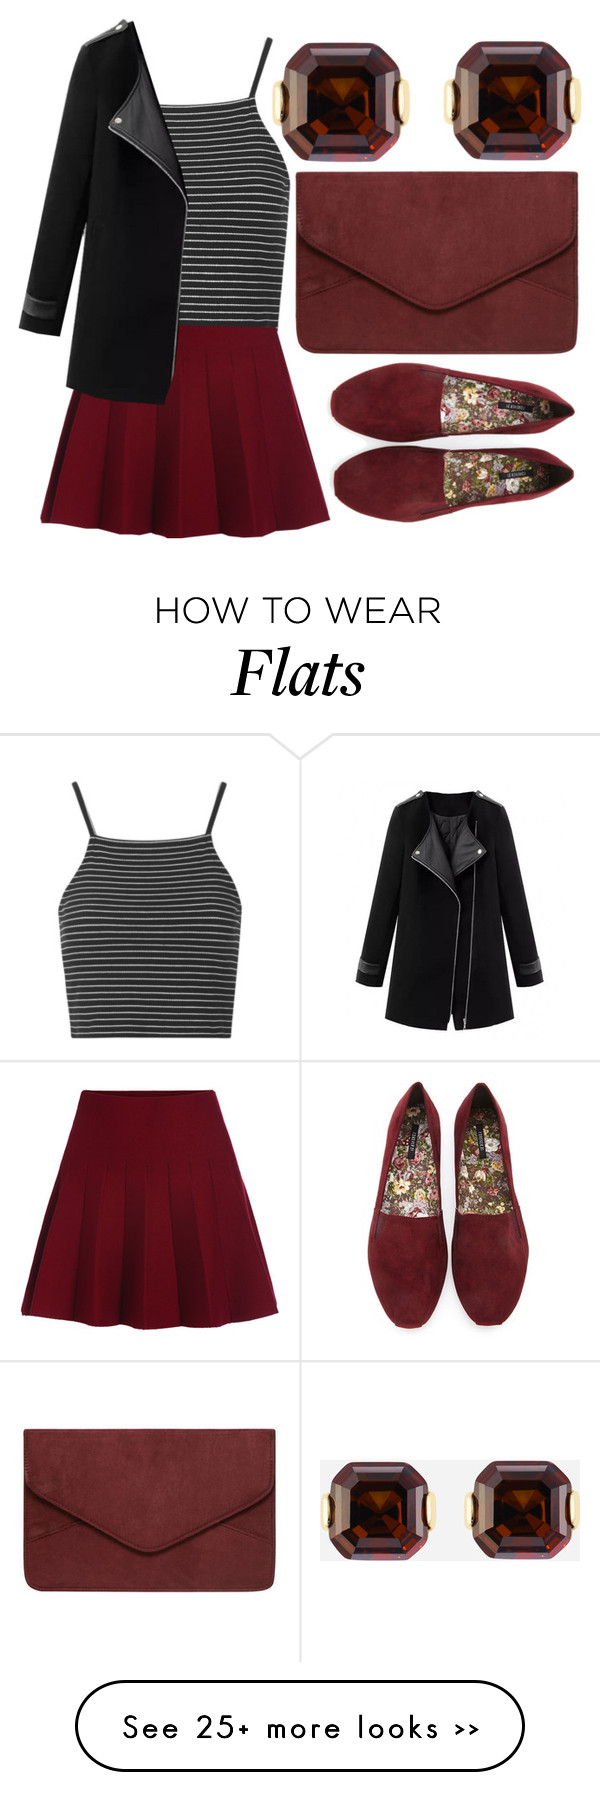 """Untitled #93"" by katie-m1 on Polyvore featuring Topshop, Dorothy Perkins, Forever 21 and Henri Bendel"